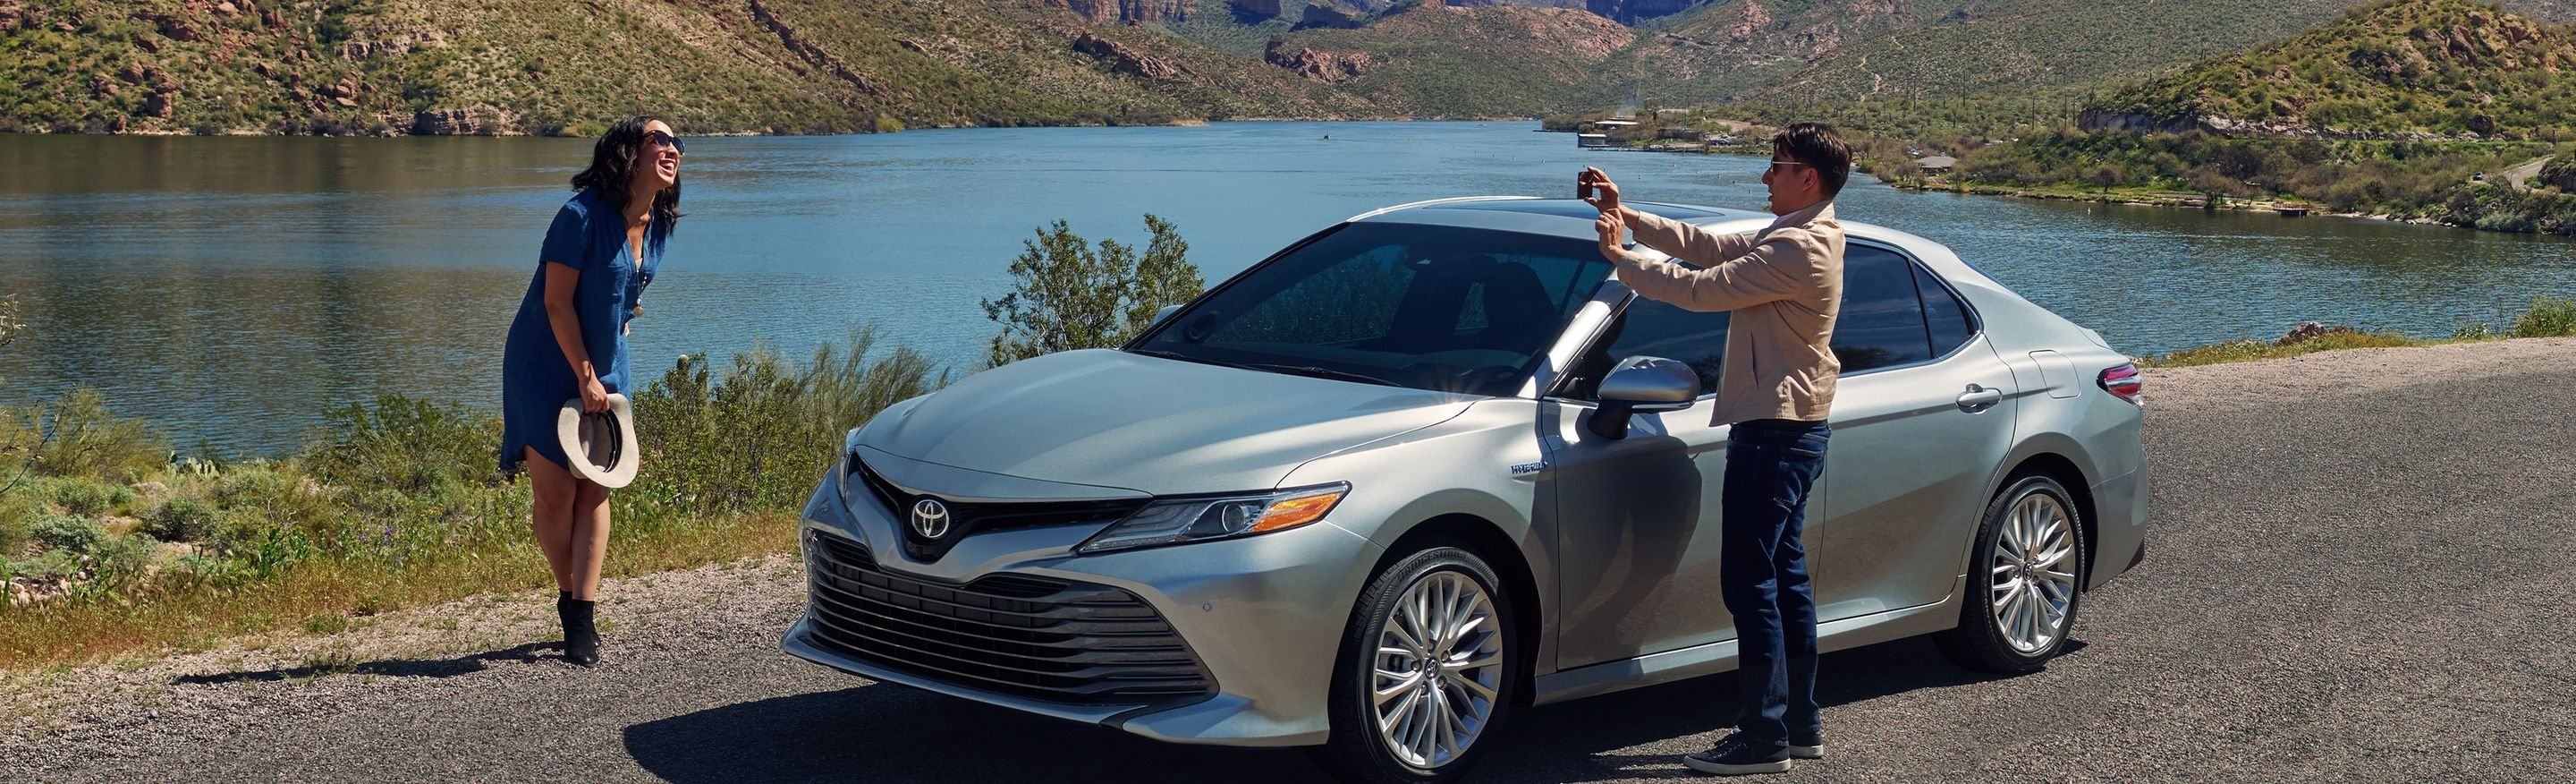 2019 Toyota Camry for Sale near Cleveland, OH